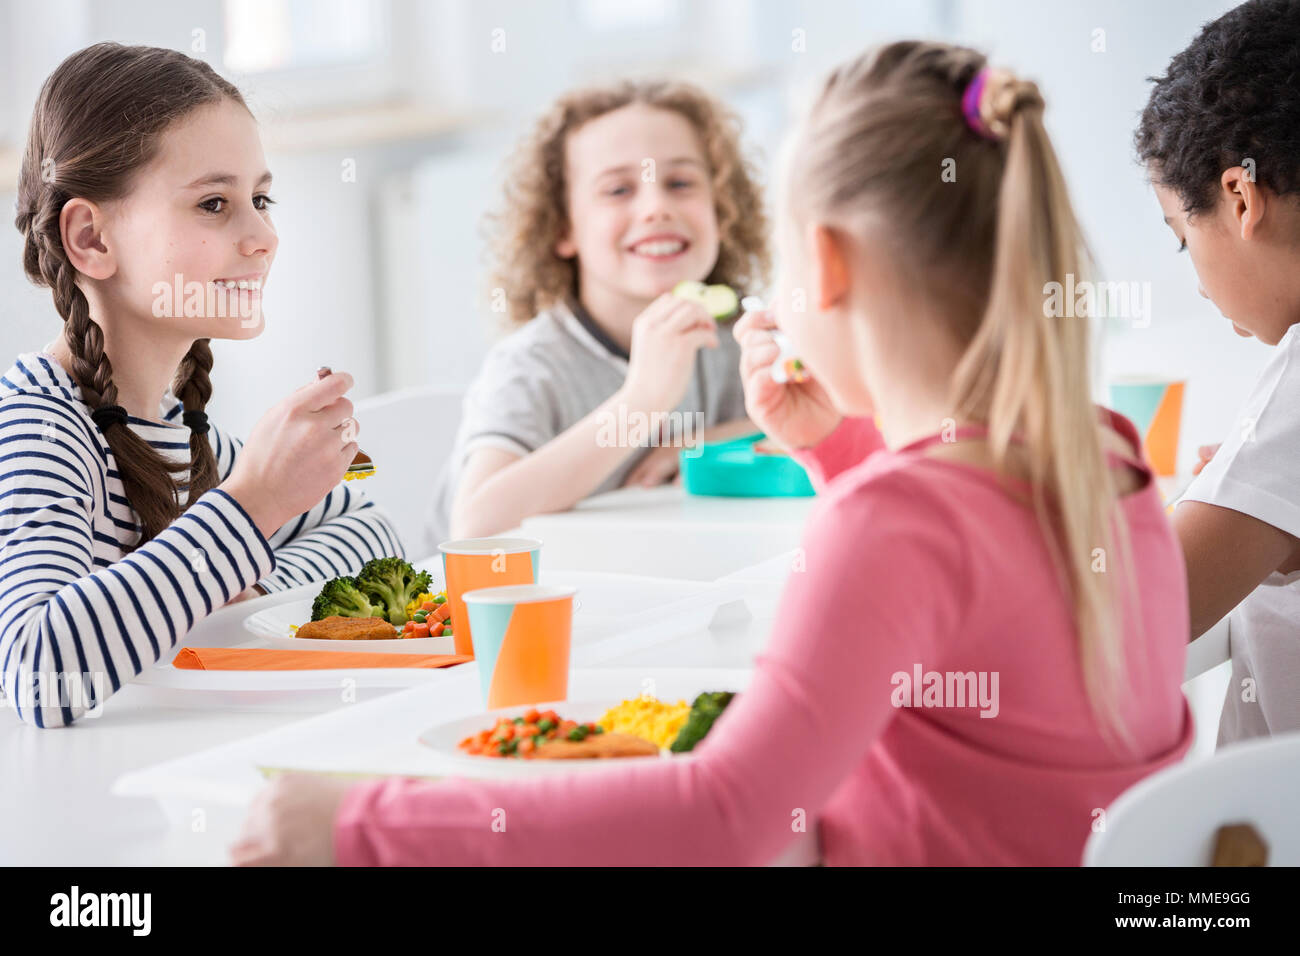 Smiling girl eating vegetables during lunch break with friends at school - Stock Image